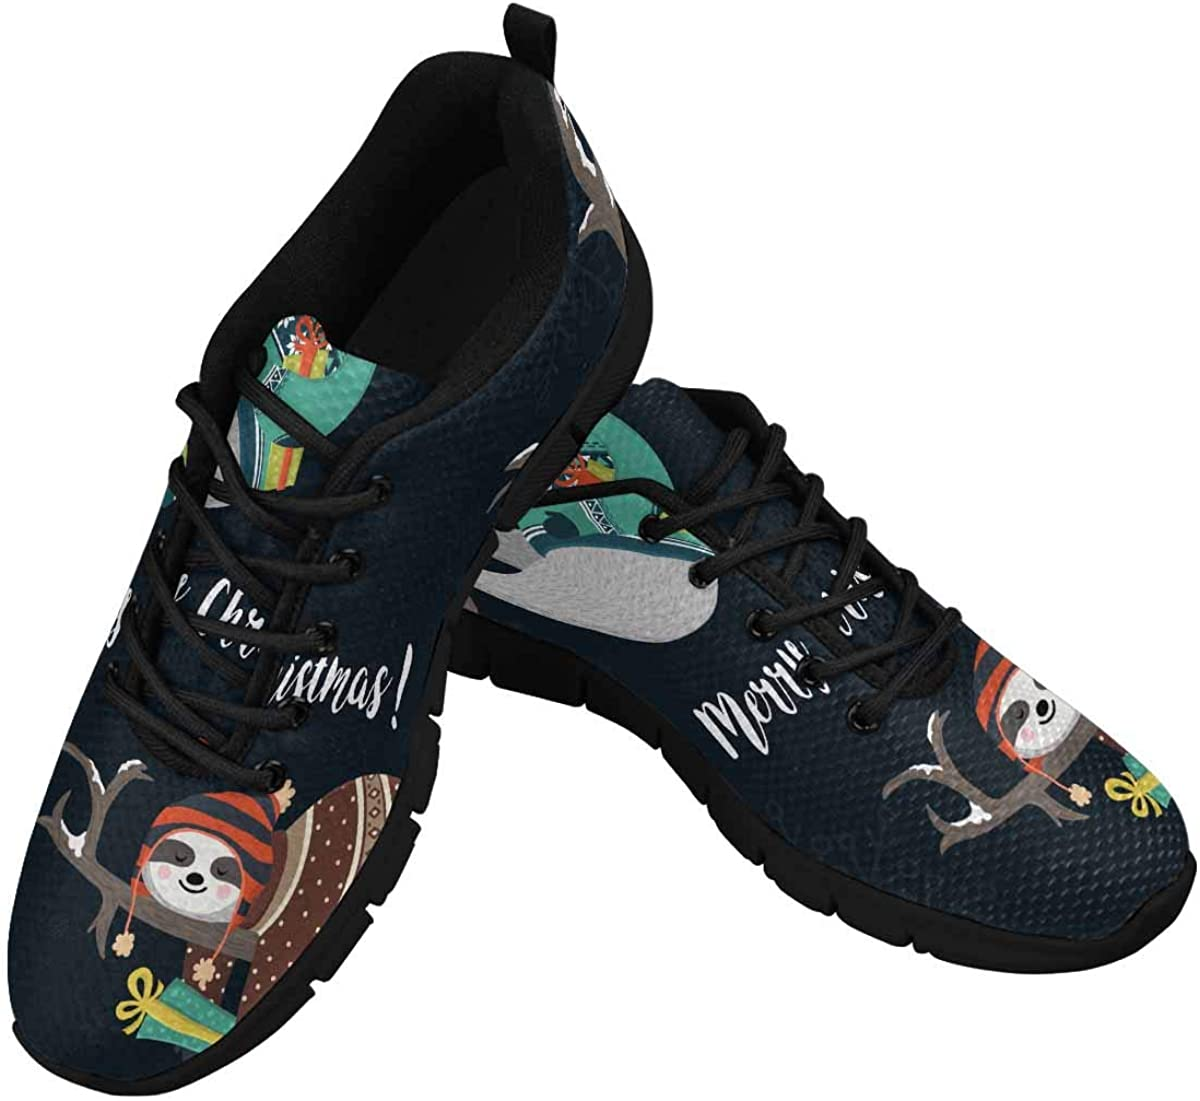 InterestPrint Cute Sloth Women's Lace Up Breathable Non Slip Sneaker